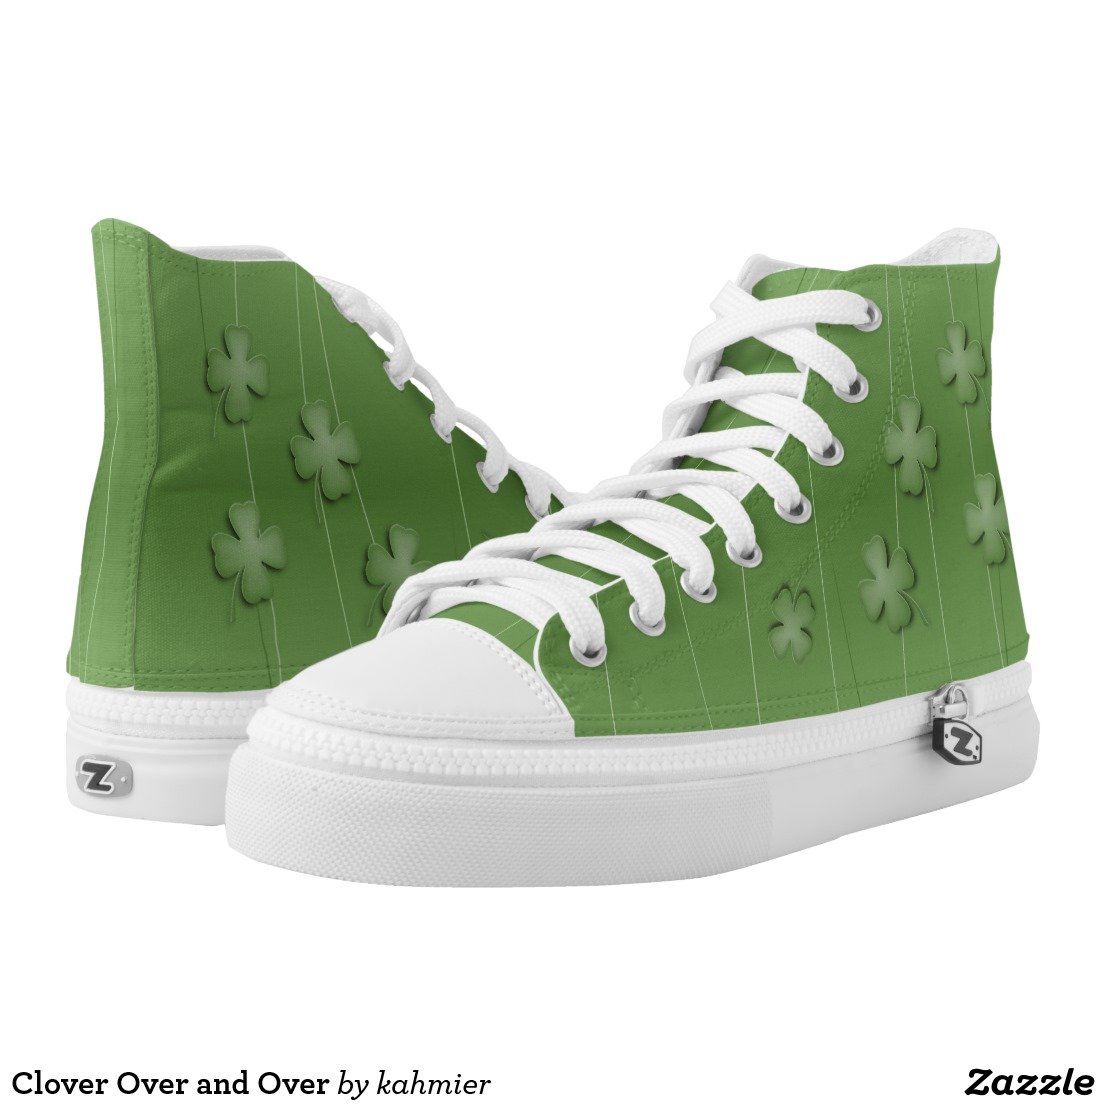 Clover Over and Over High-Top Sneakers